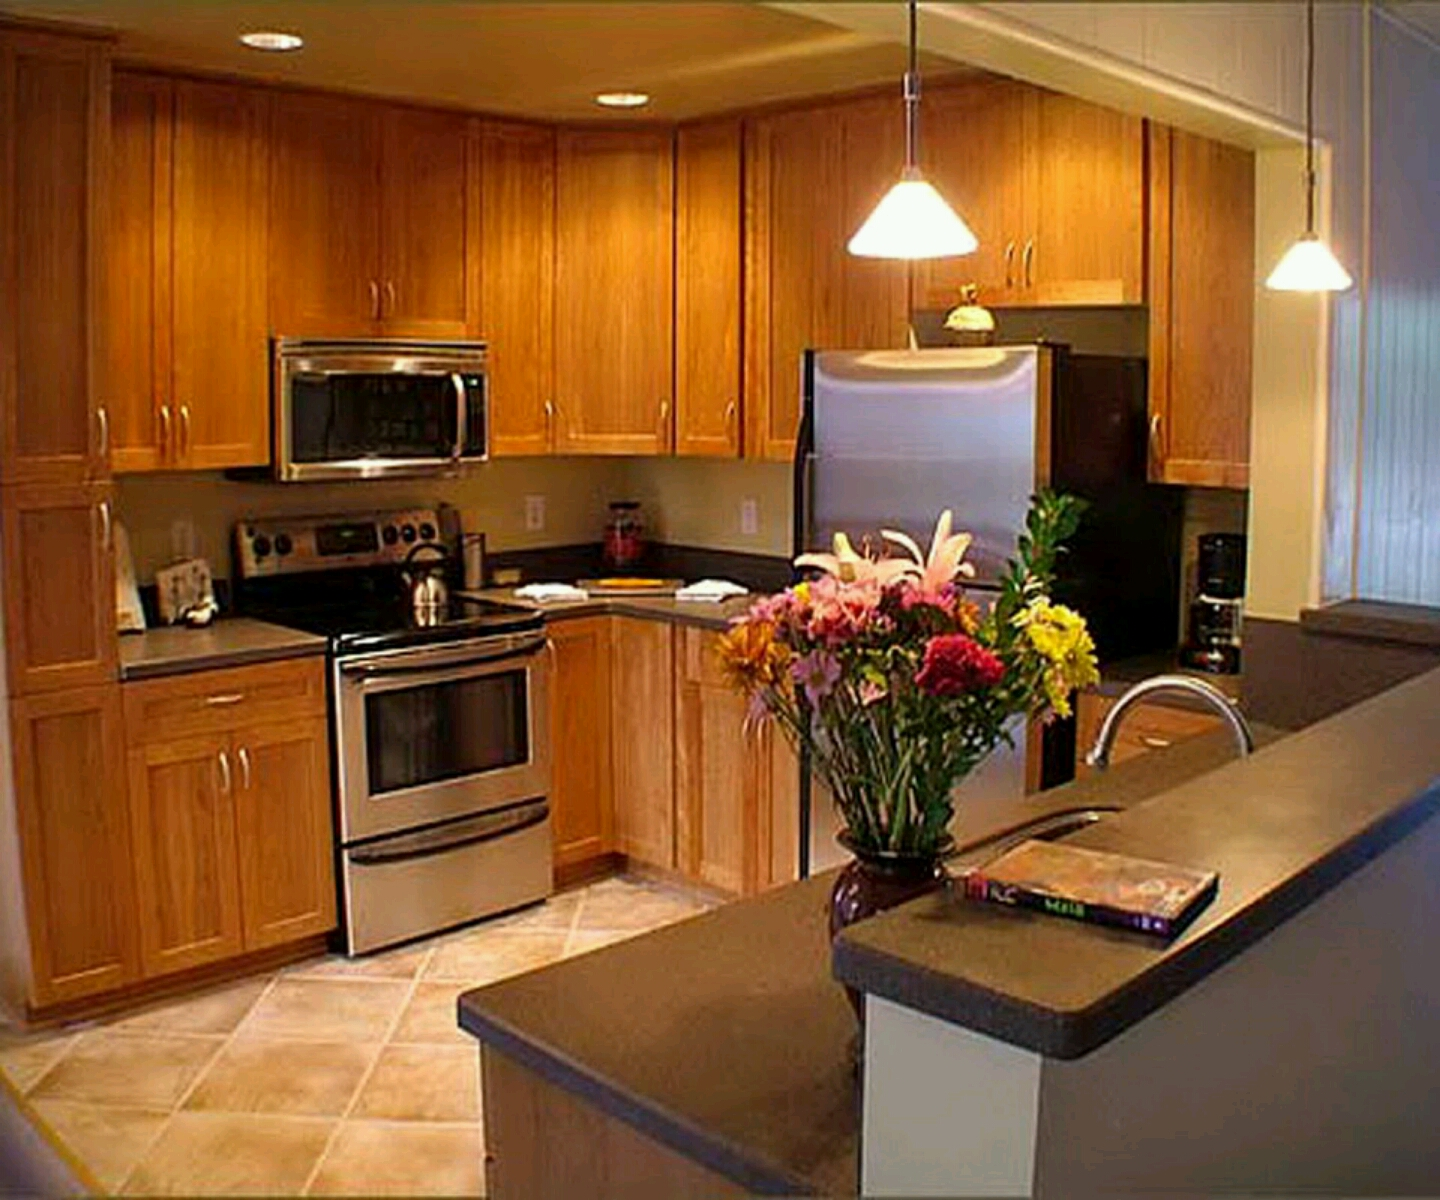 Wooden Kitchen Furniture Photos: Modern Wooden Kitchen Cabinets Designs.